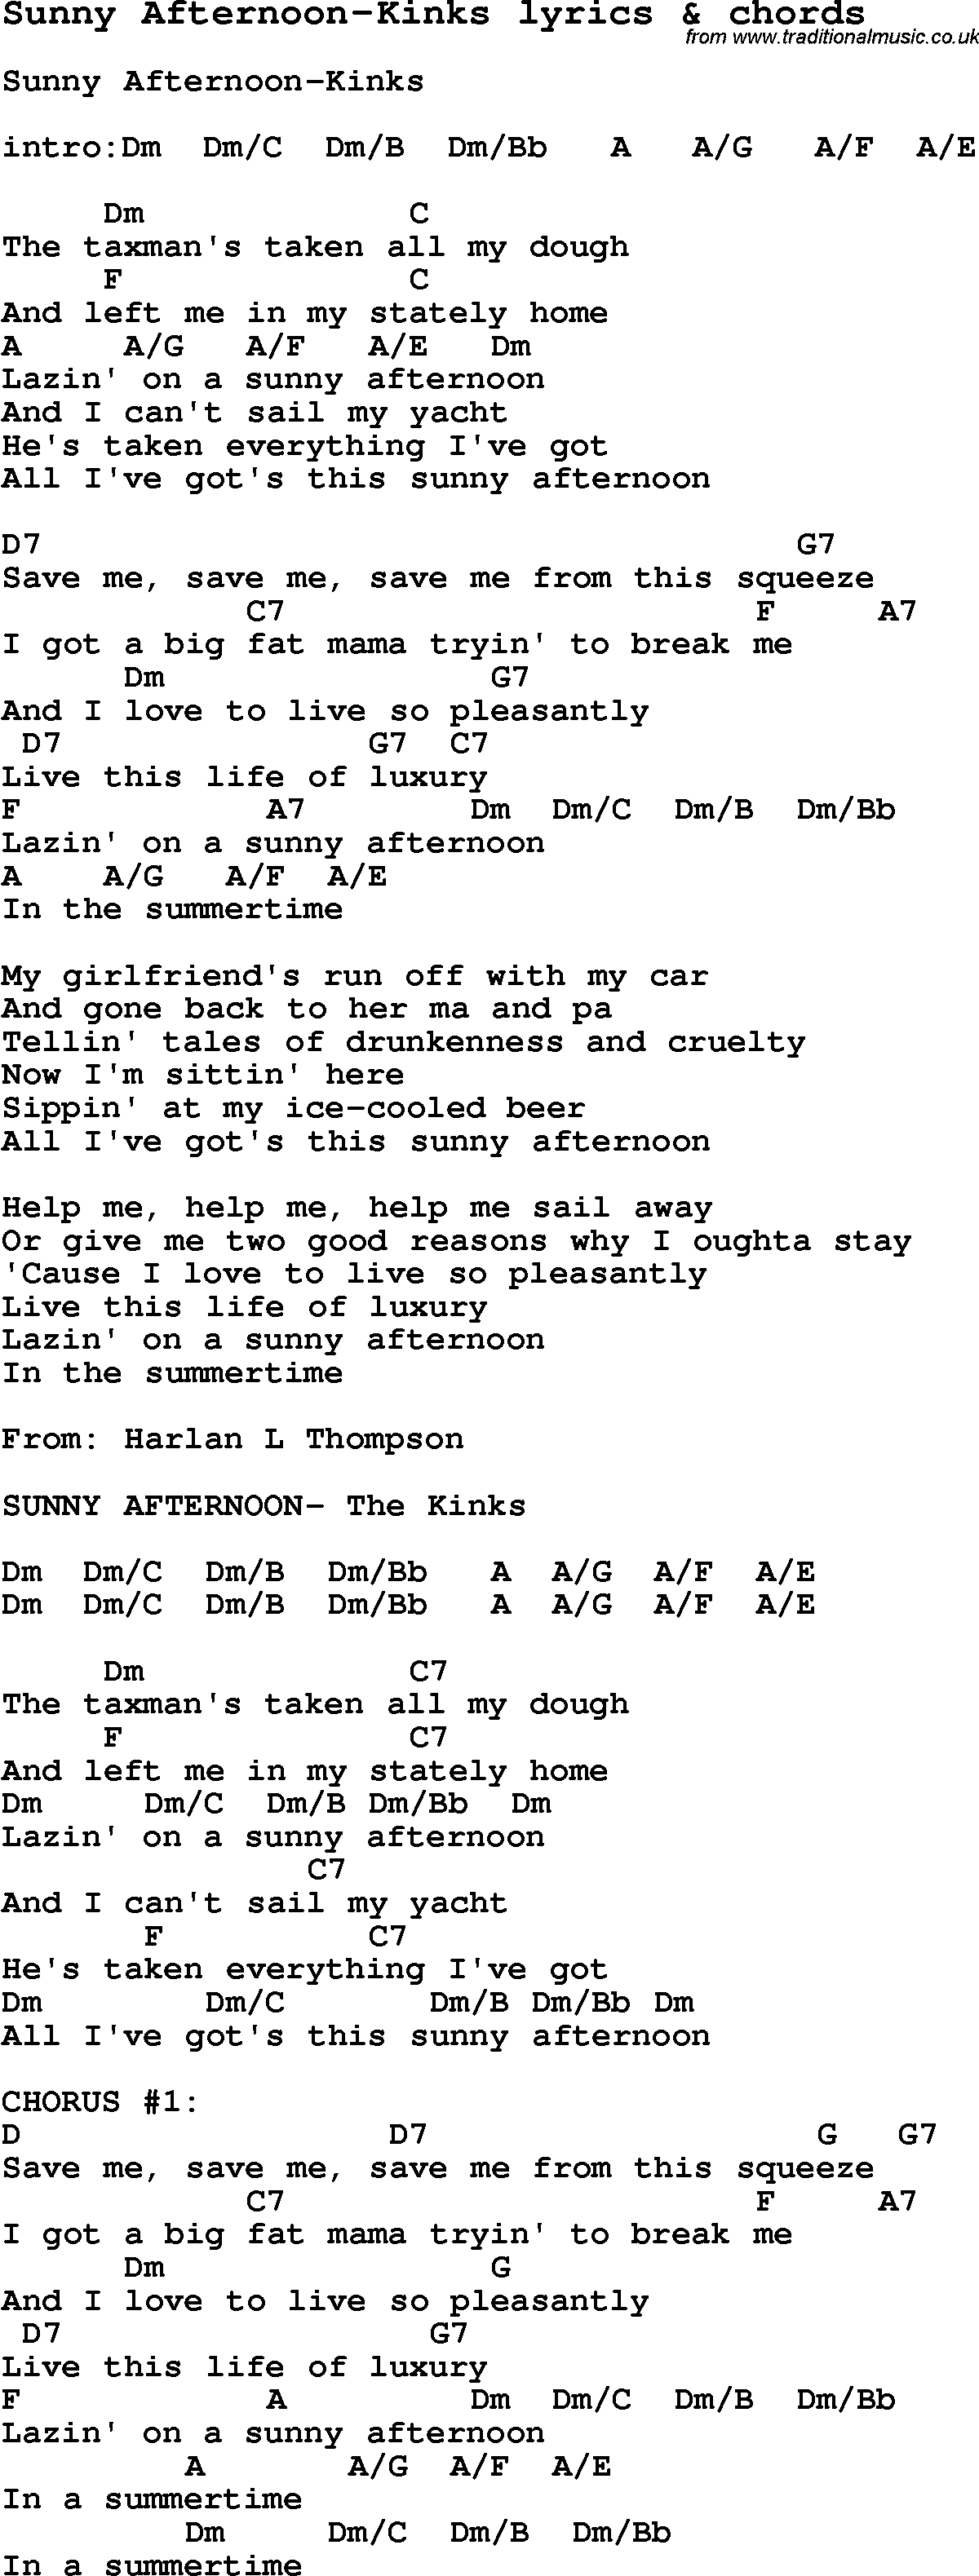 Love song lyrics forsunny afternoon kinks with chords love song lyrics for sunny afternoon kinks with chords for ukulele guitar banjo hexwebz Image collections